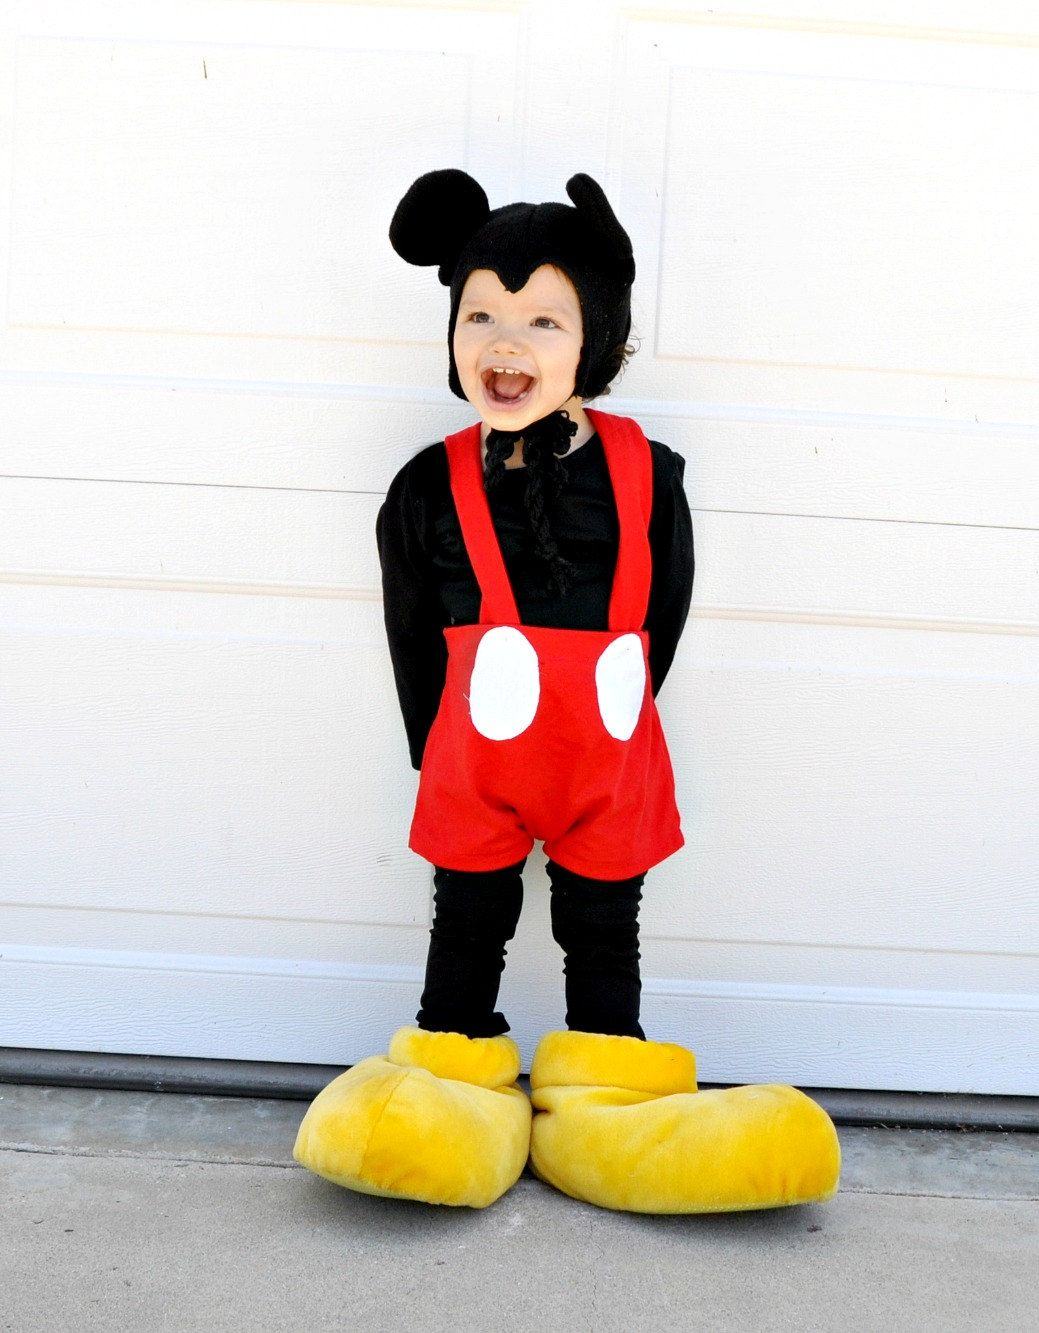 Mickey mouse inspired costume Set boys babies kids childrens toddler infants halloween costumes school event.. $129.00 via Etsy.  sc 1 st  Pinterest & Mickey mouse inspired costume Set boys babies kids childrens toddler ...